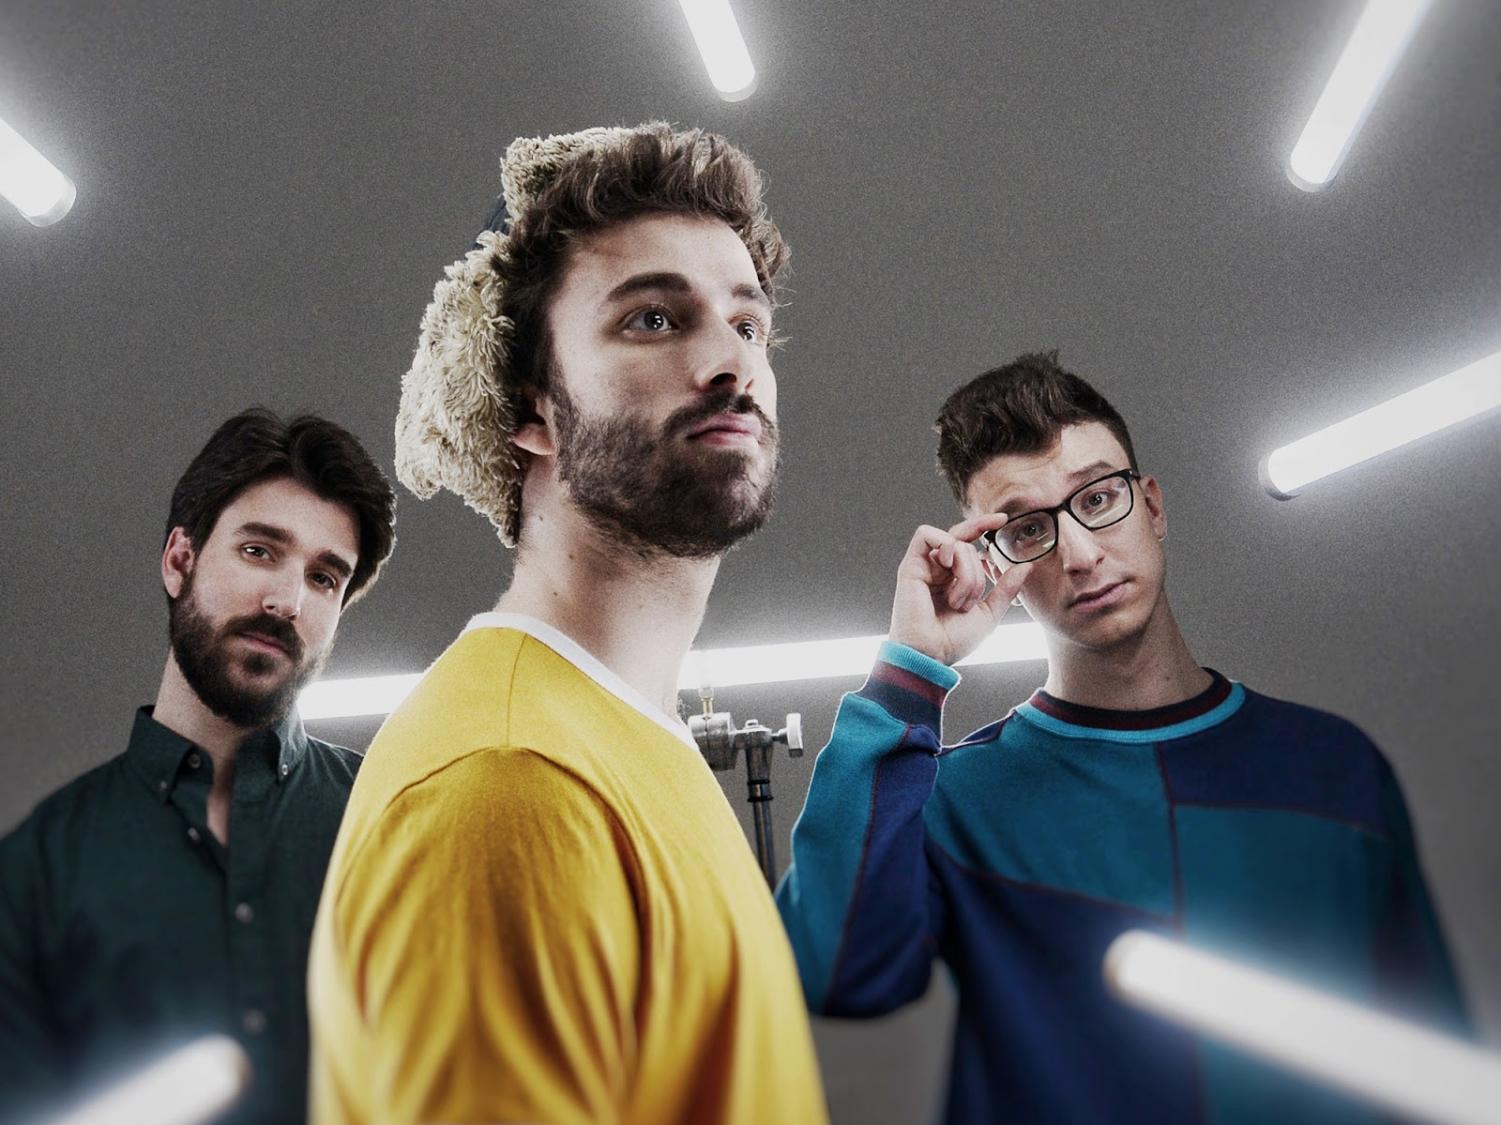 Photo of AJR courtesy of americansongwriter.com